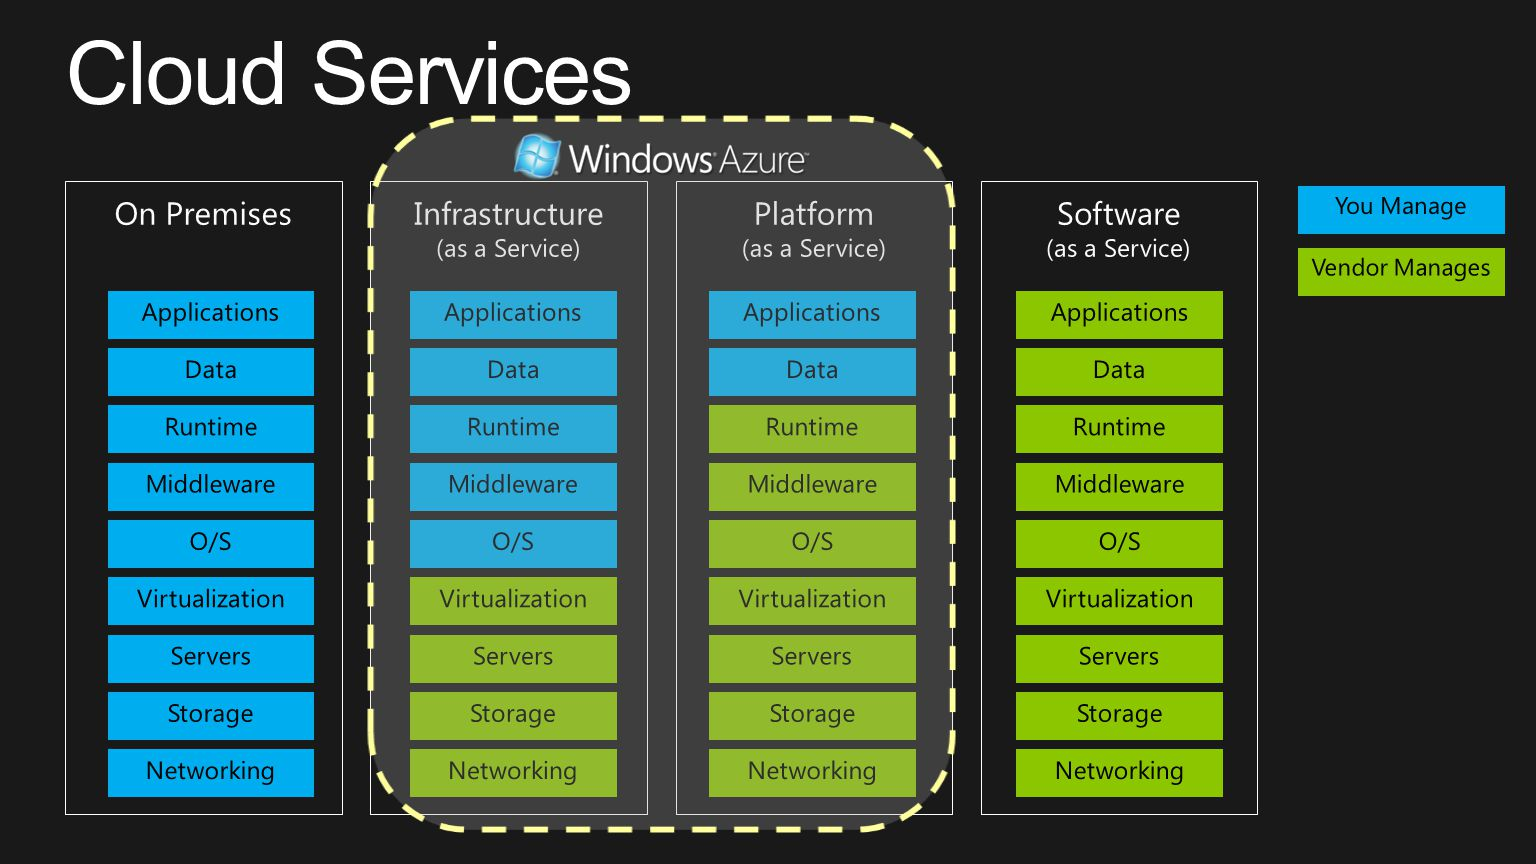 Cloud Services On Premises Infrastructure Platform Software Storage